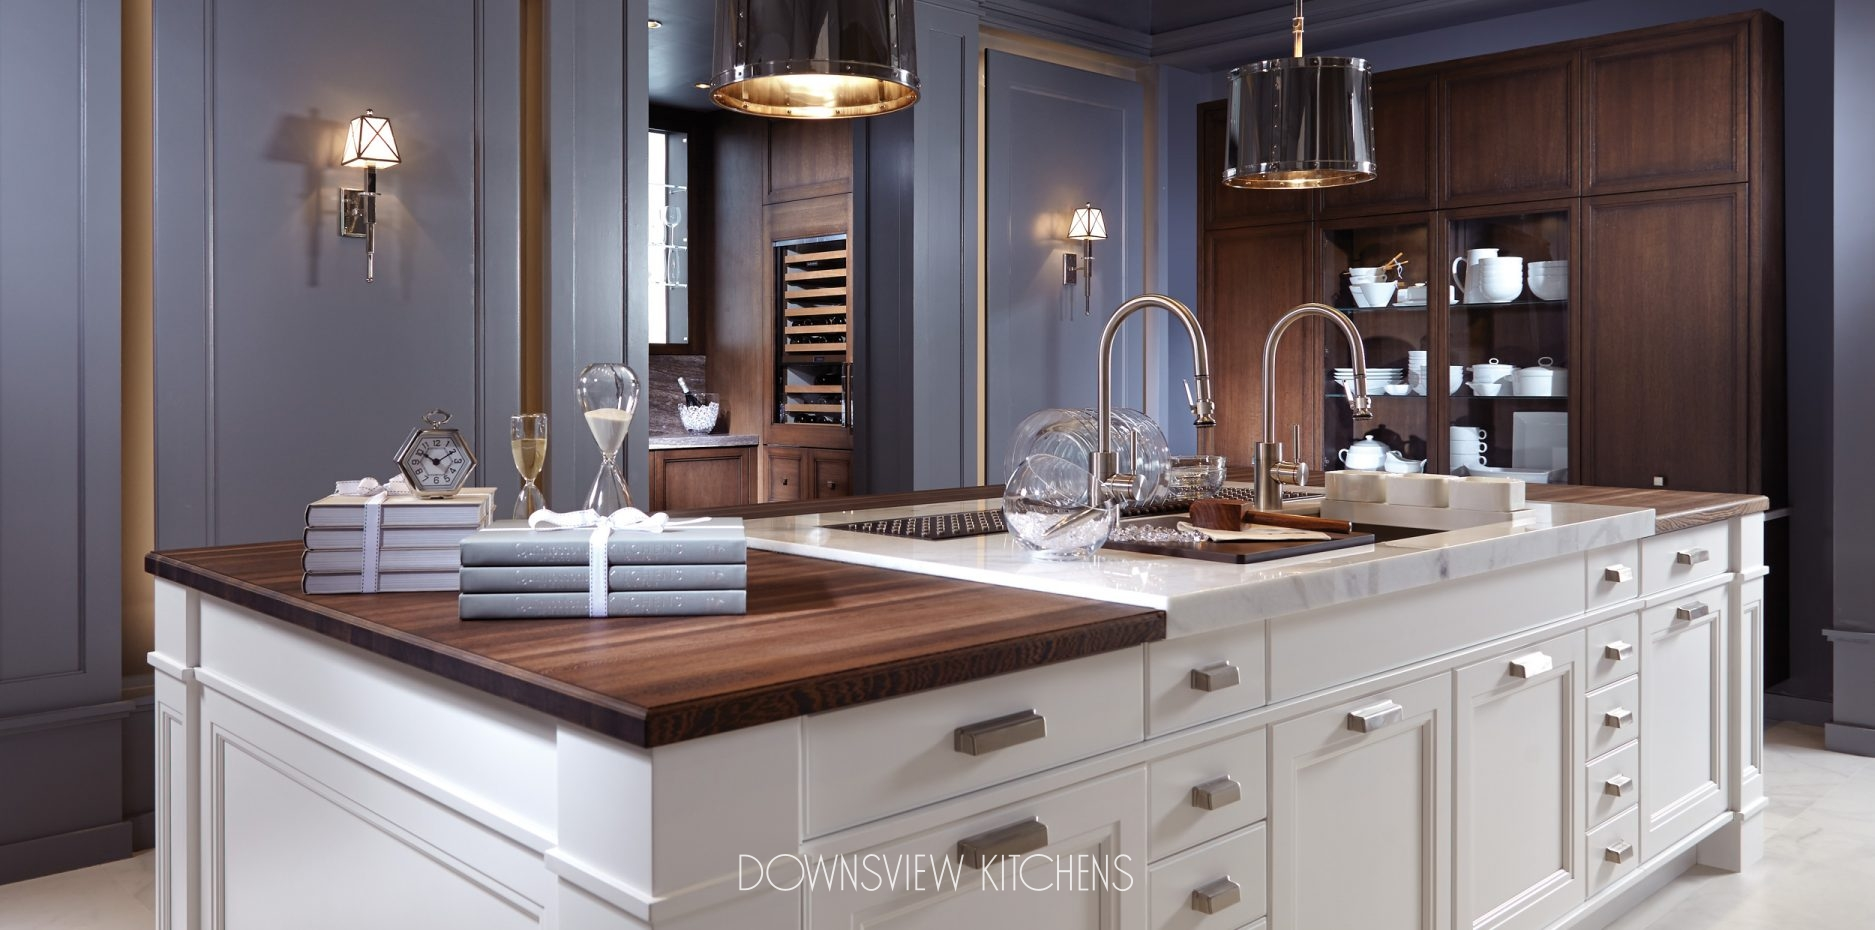 Design Wisdom Downsview Kitchens And Fine Custom Cabinetry Manufacturers Of Custom Kitchen